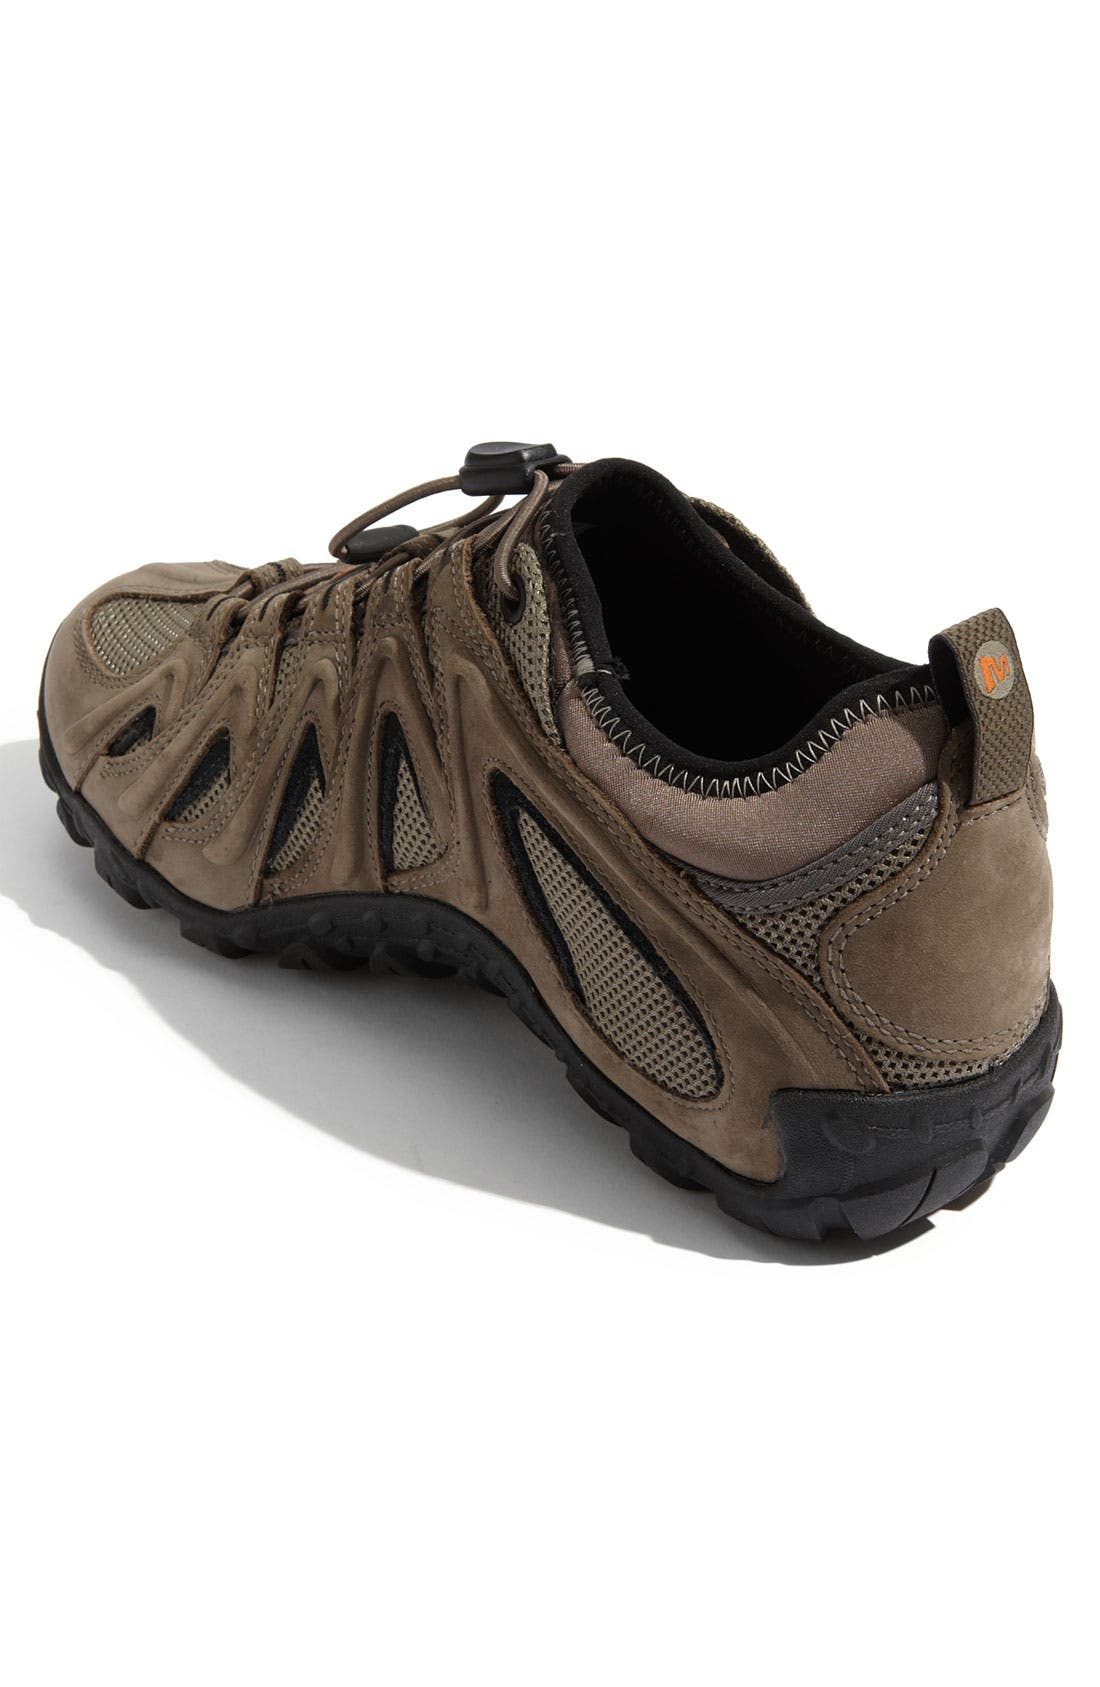 Alternate Image 3  - Merrell 'Chameleon 4' Hiking Shoe (Men)